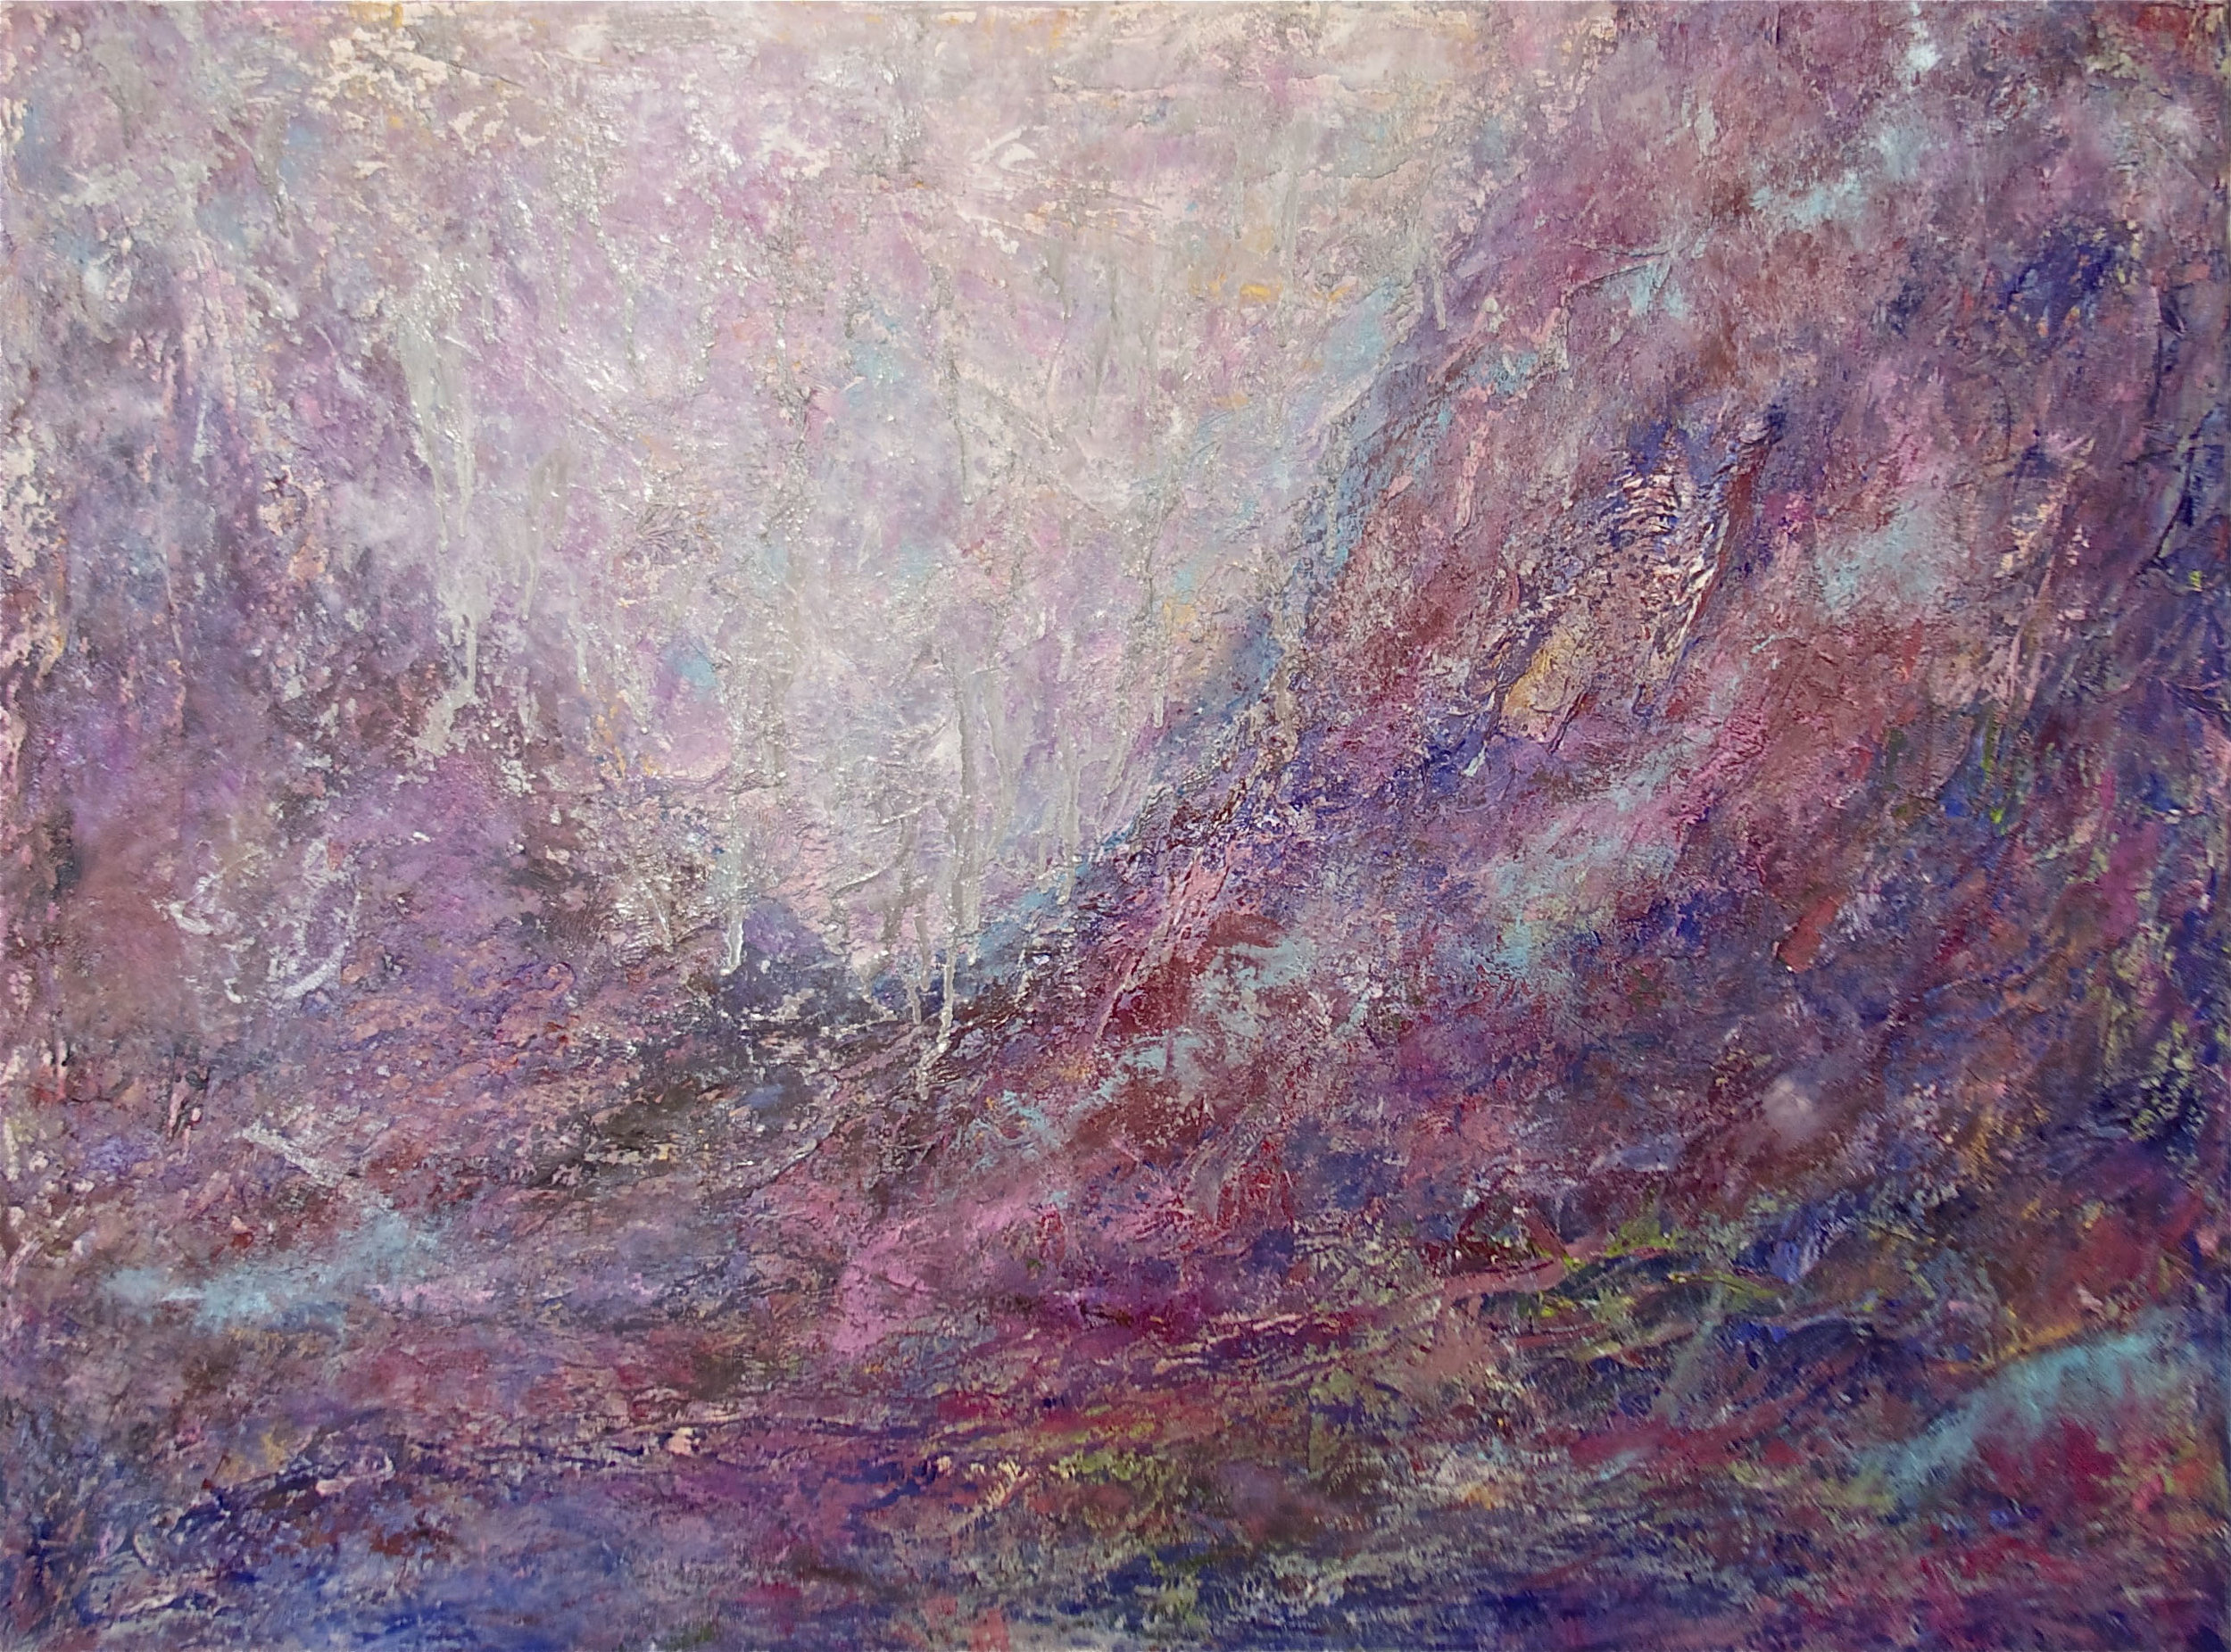 Purple Haze, 2014